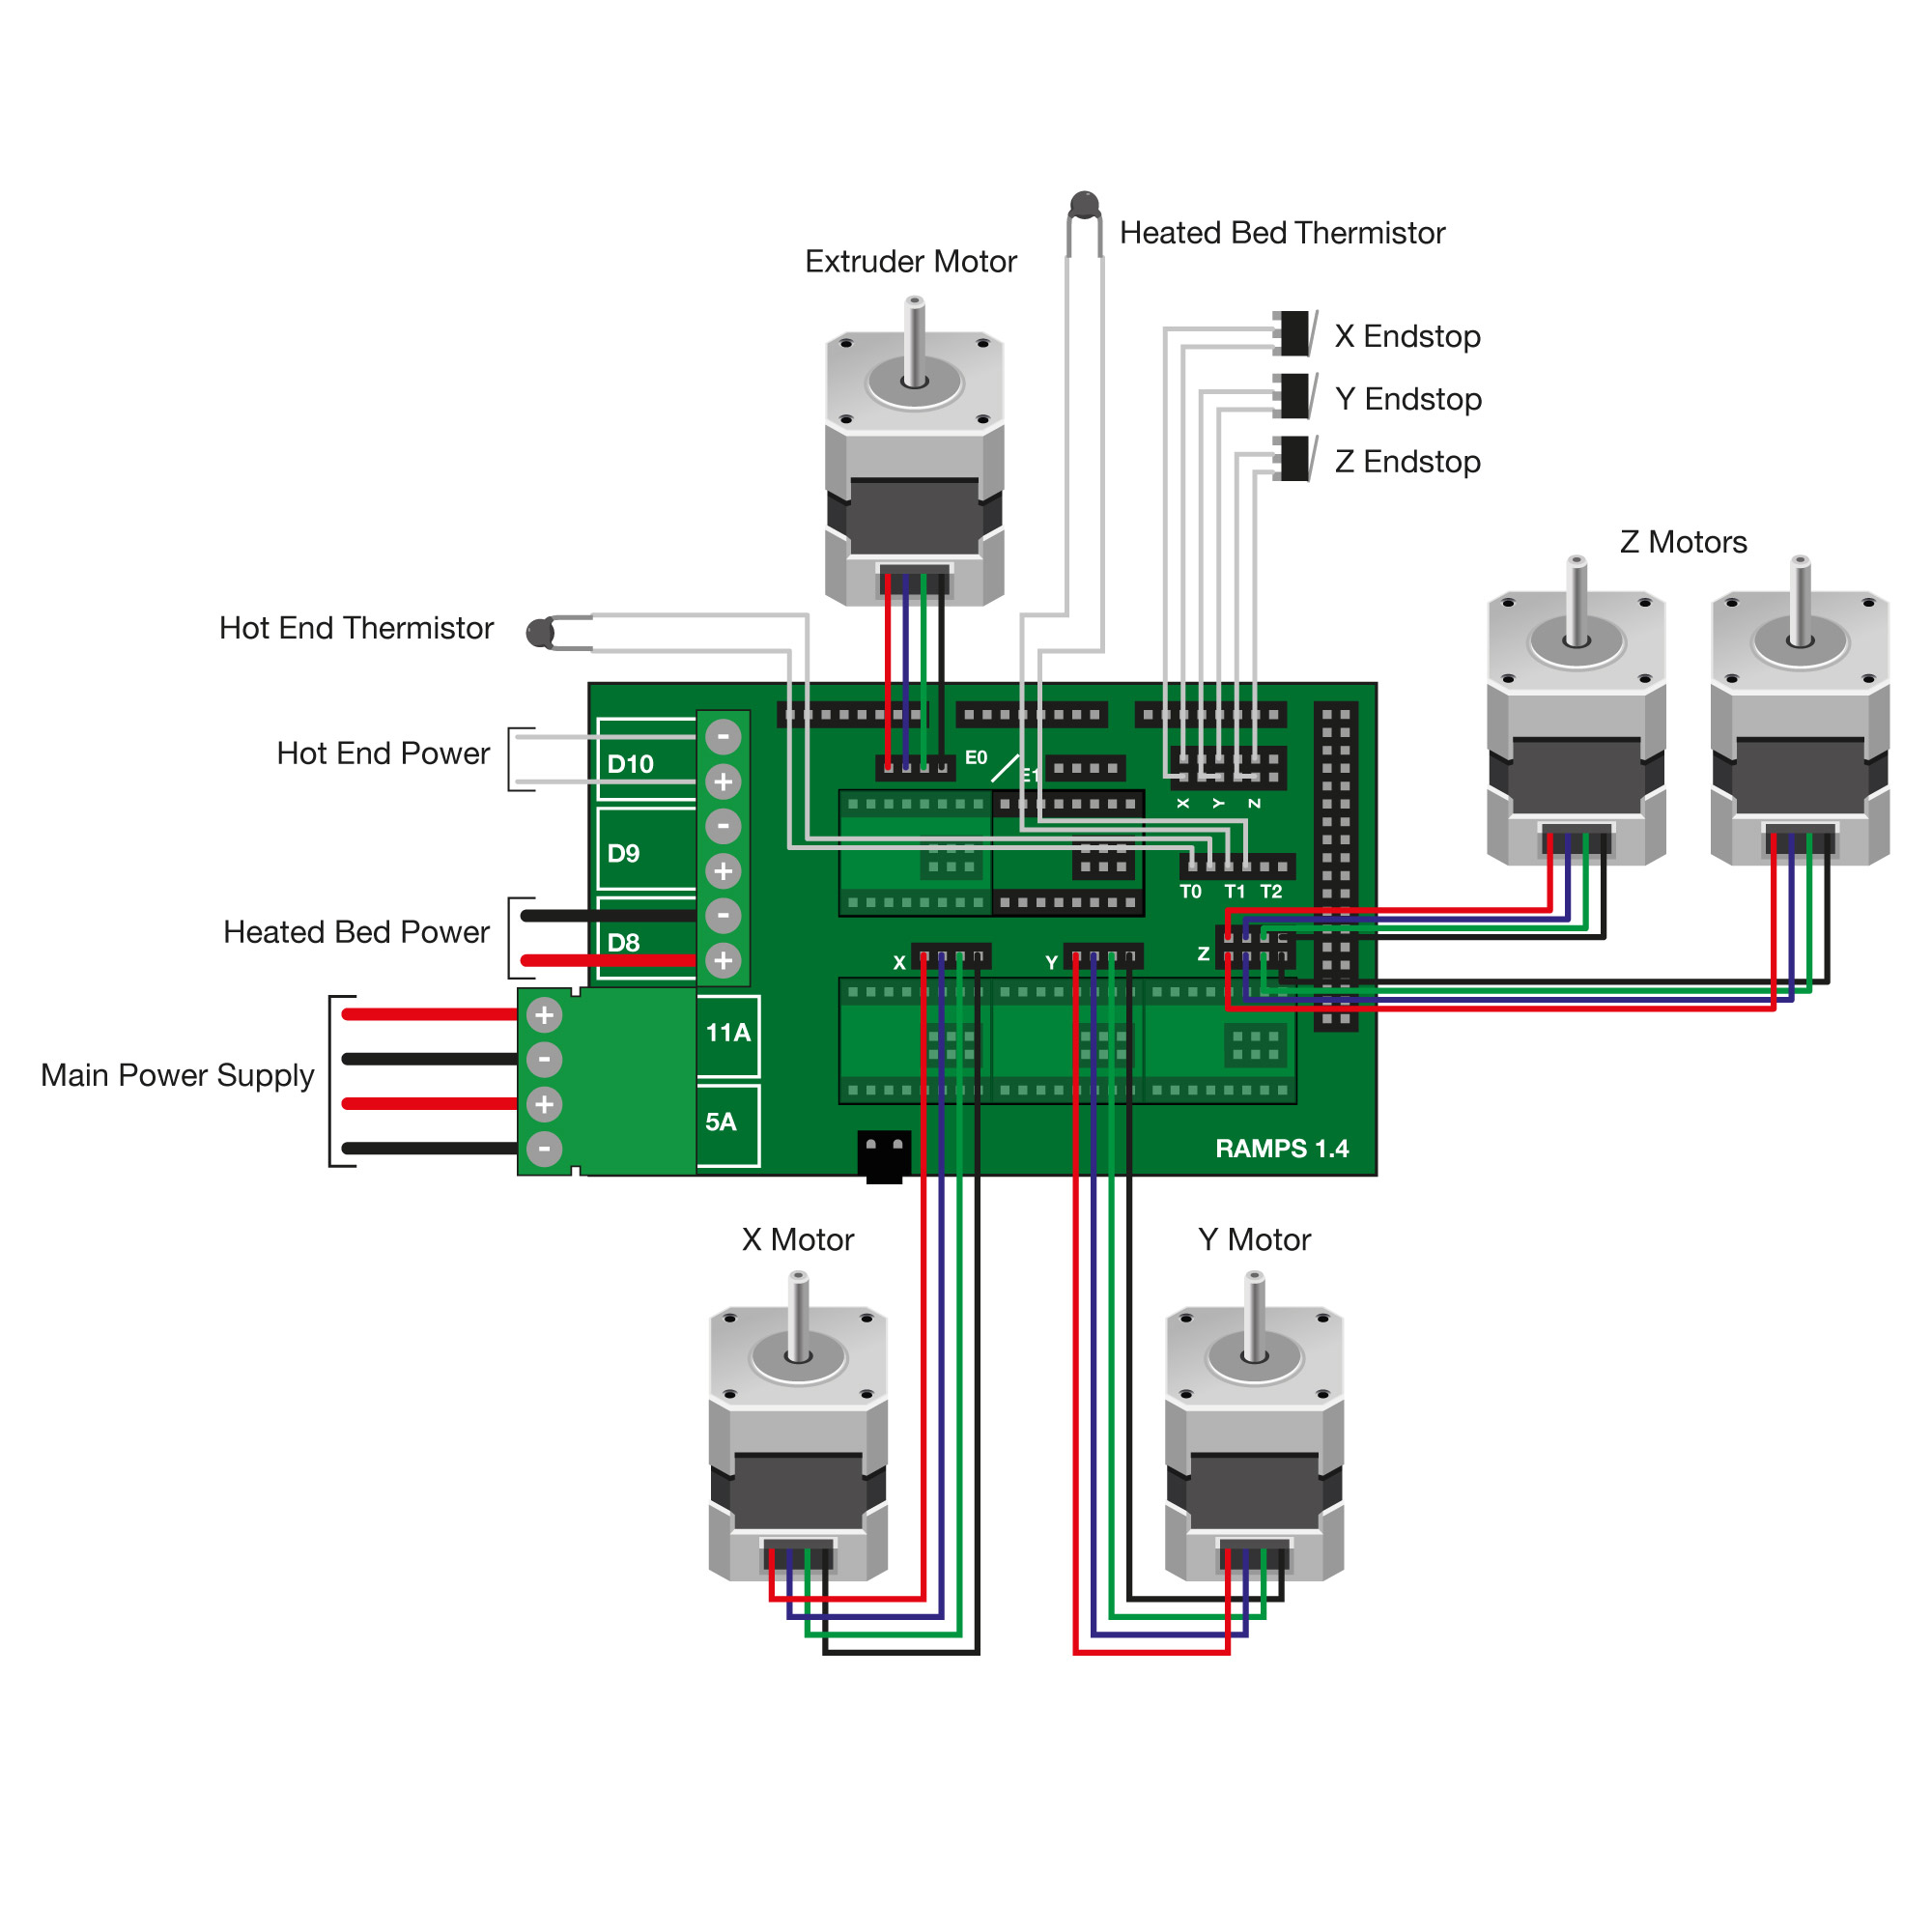 15470352354_3baf2e7bba_o ramps wiring diagram smoothie board wiring diagram \u2022 free wiring ramps 1.4 wiring diagram at fashall.co